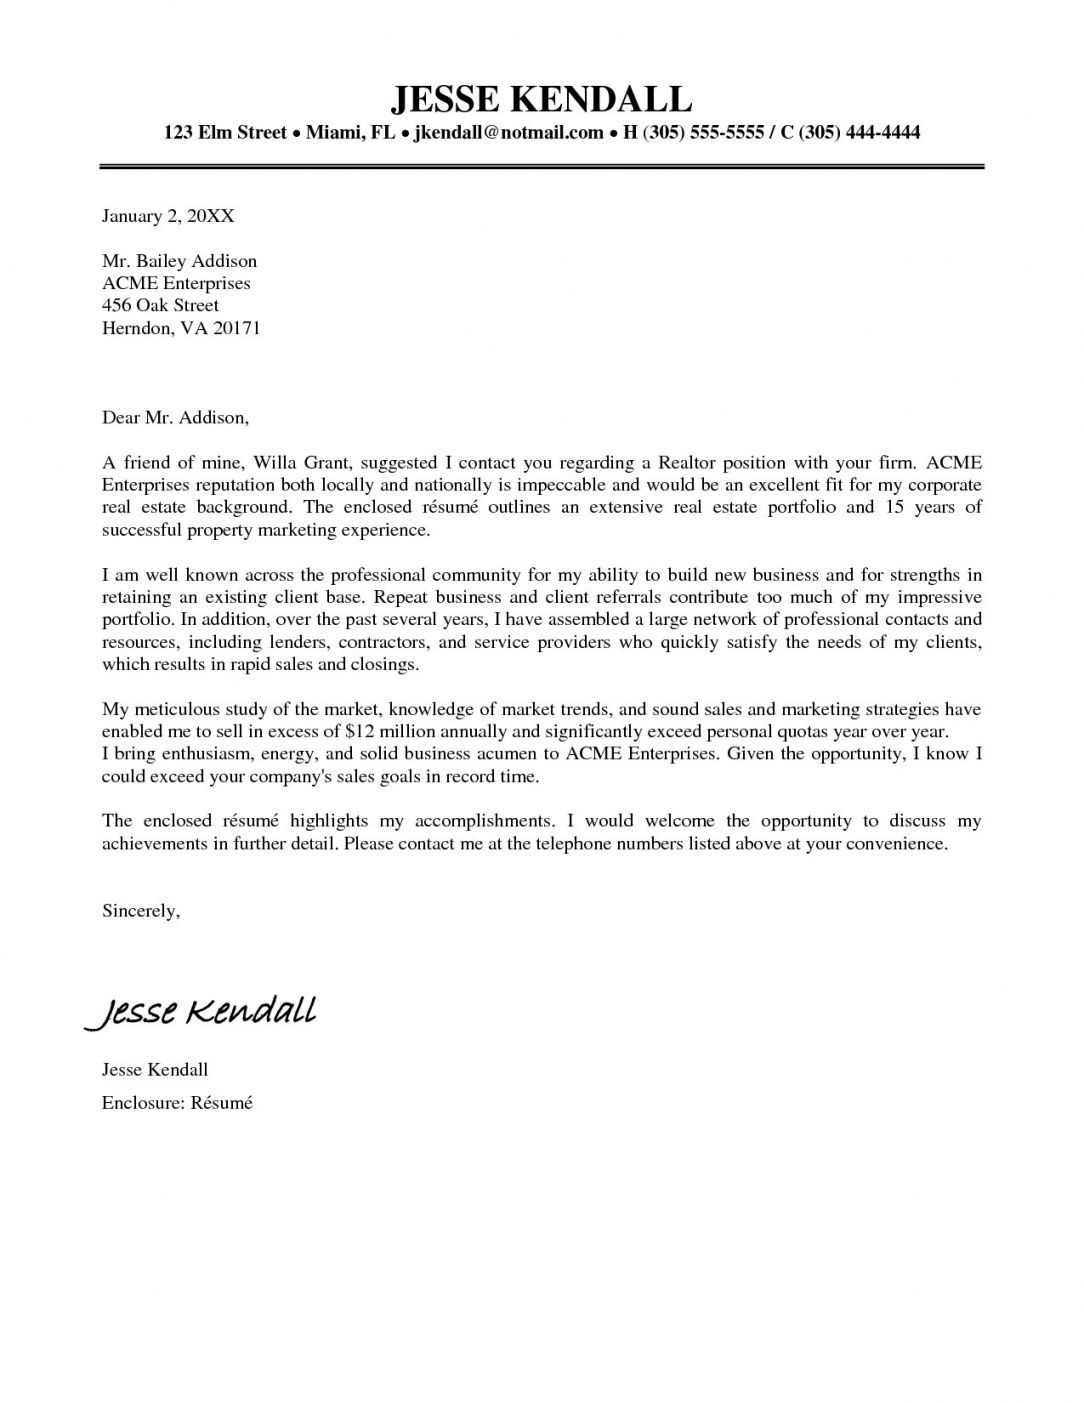 Resume Cover Letter Examples 2020